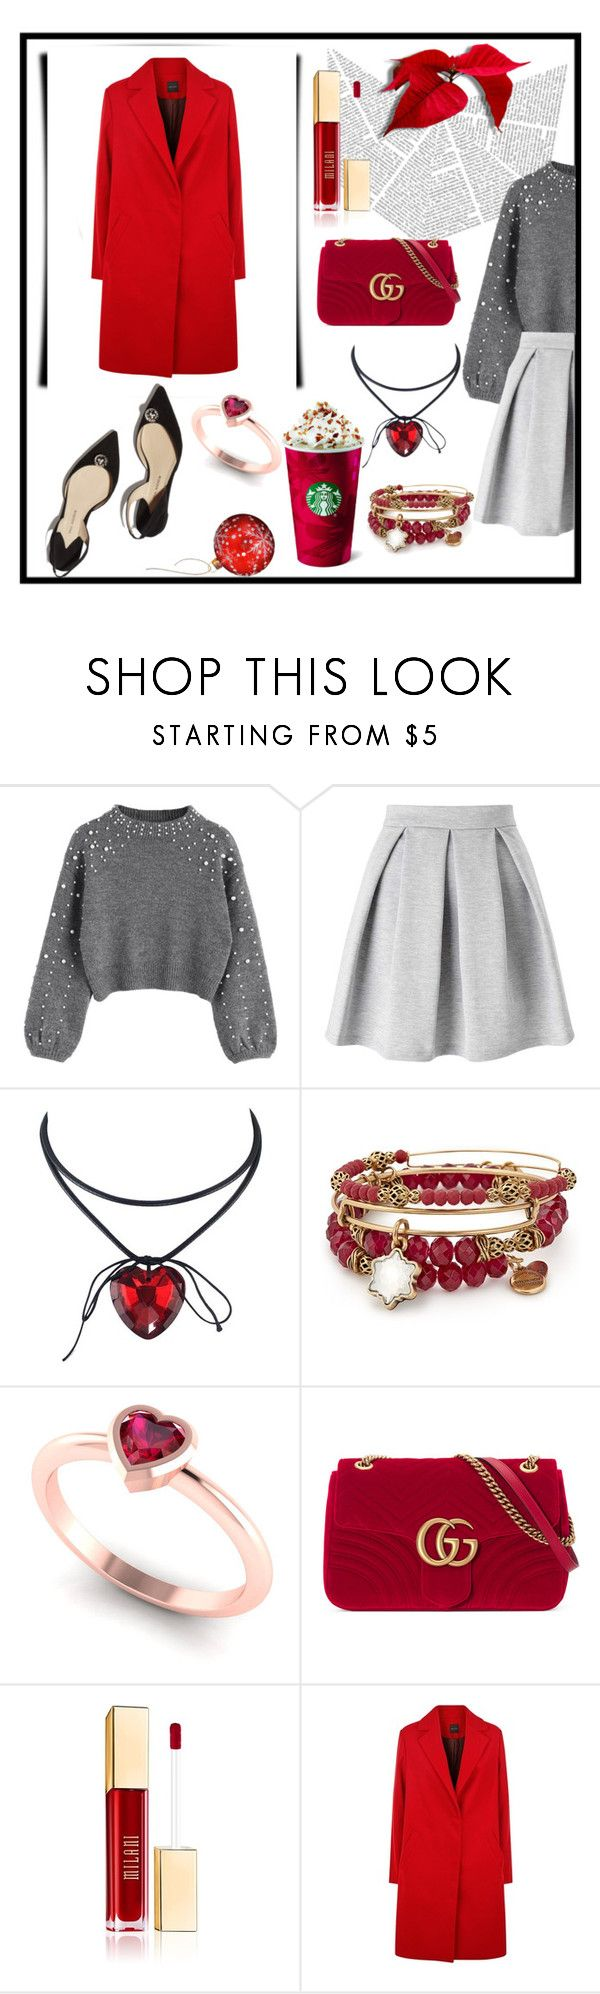 """""""073"""" by holography ❤ liked on Polyvore featuring Paul Andrew, Miss Selfridge, Alex and Ani and Gucci"""